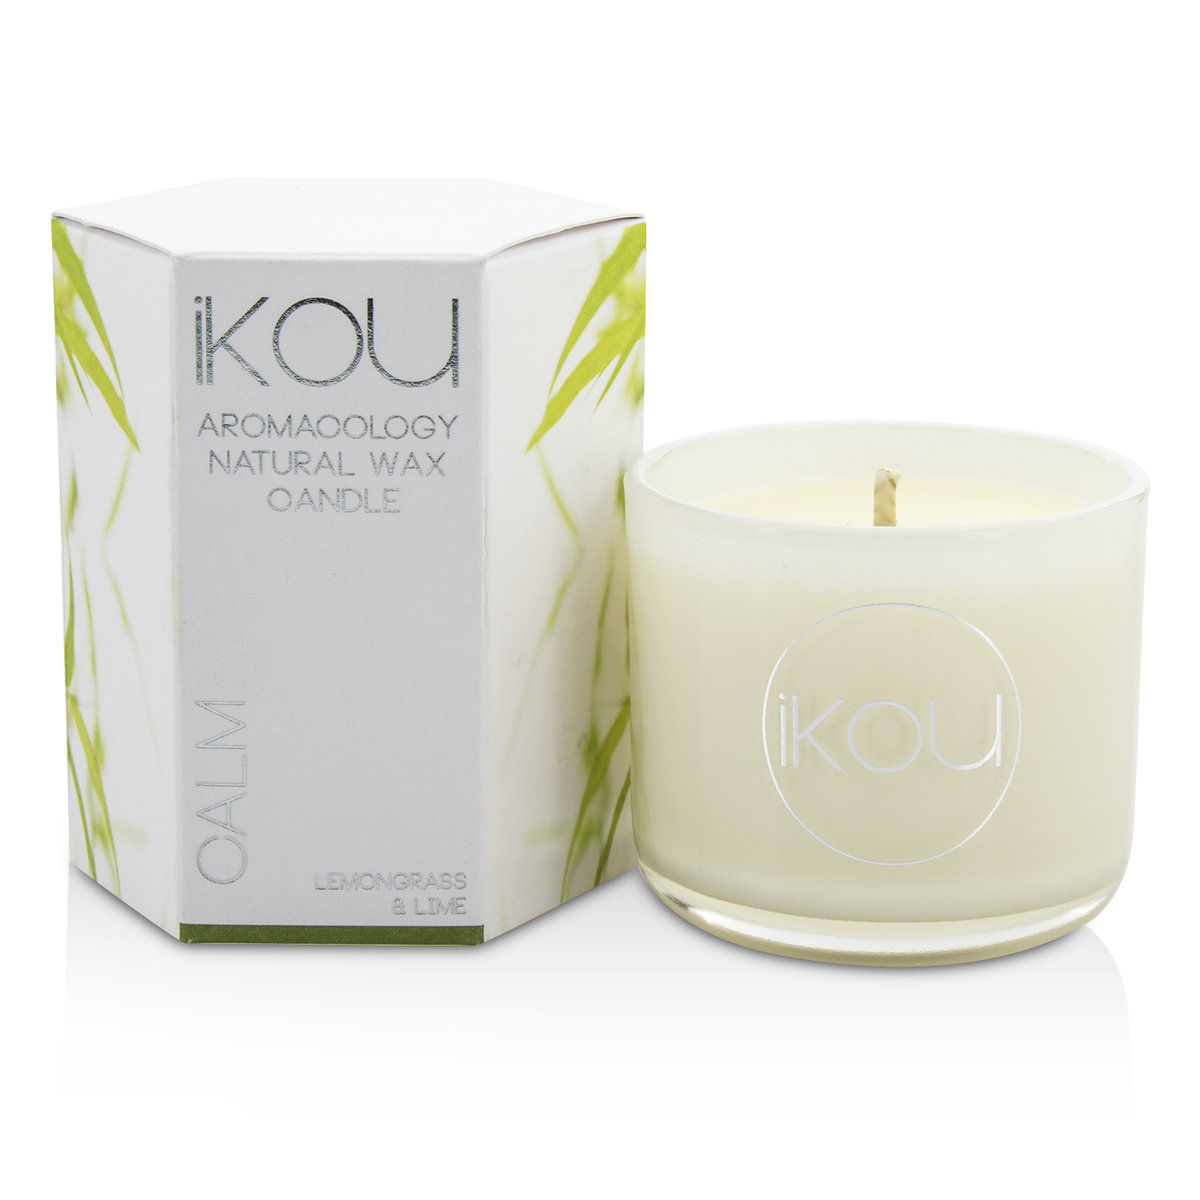 Eco-Luxury Aromacology Natural Wax Candle Glass - Calm (Lemongrass & Lime)  -[Parallel Import Product]